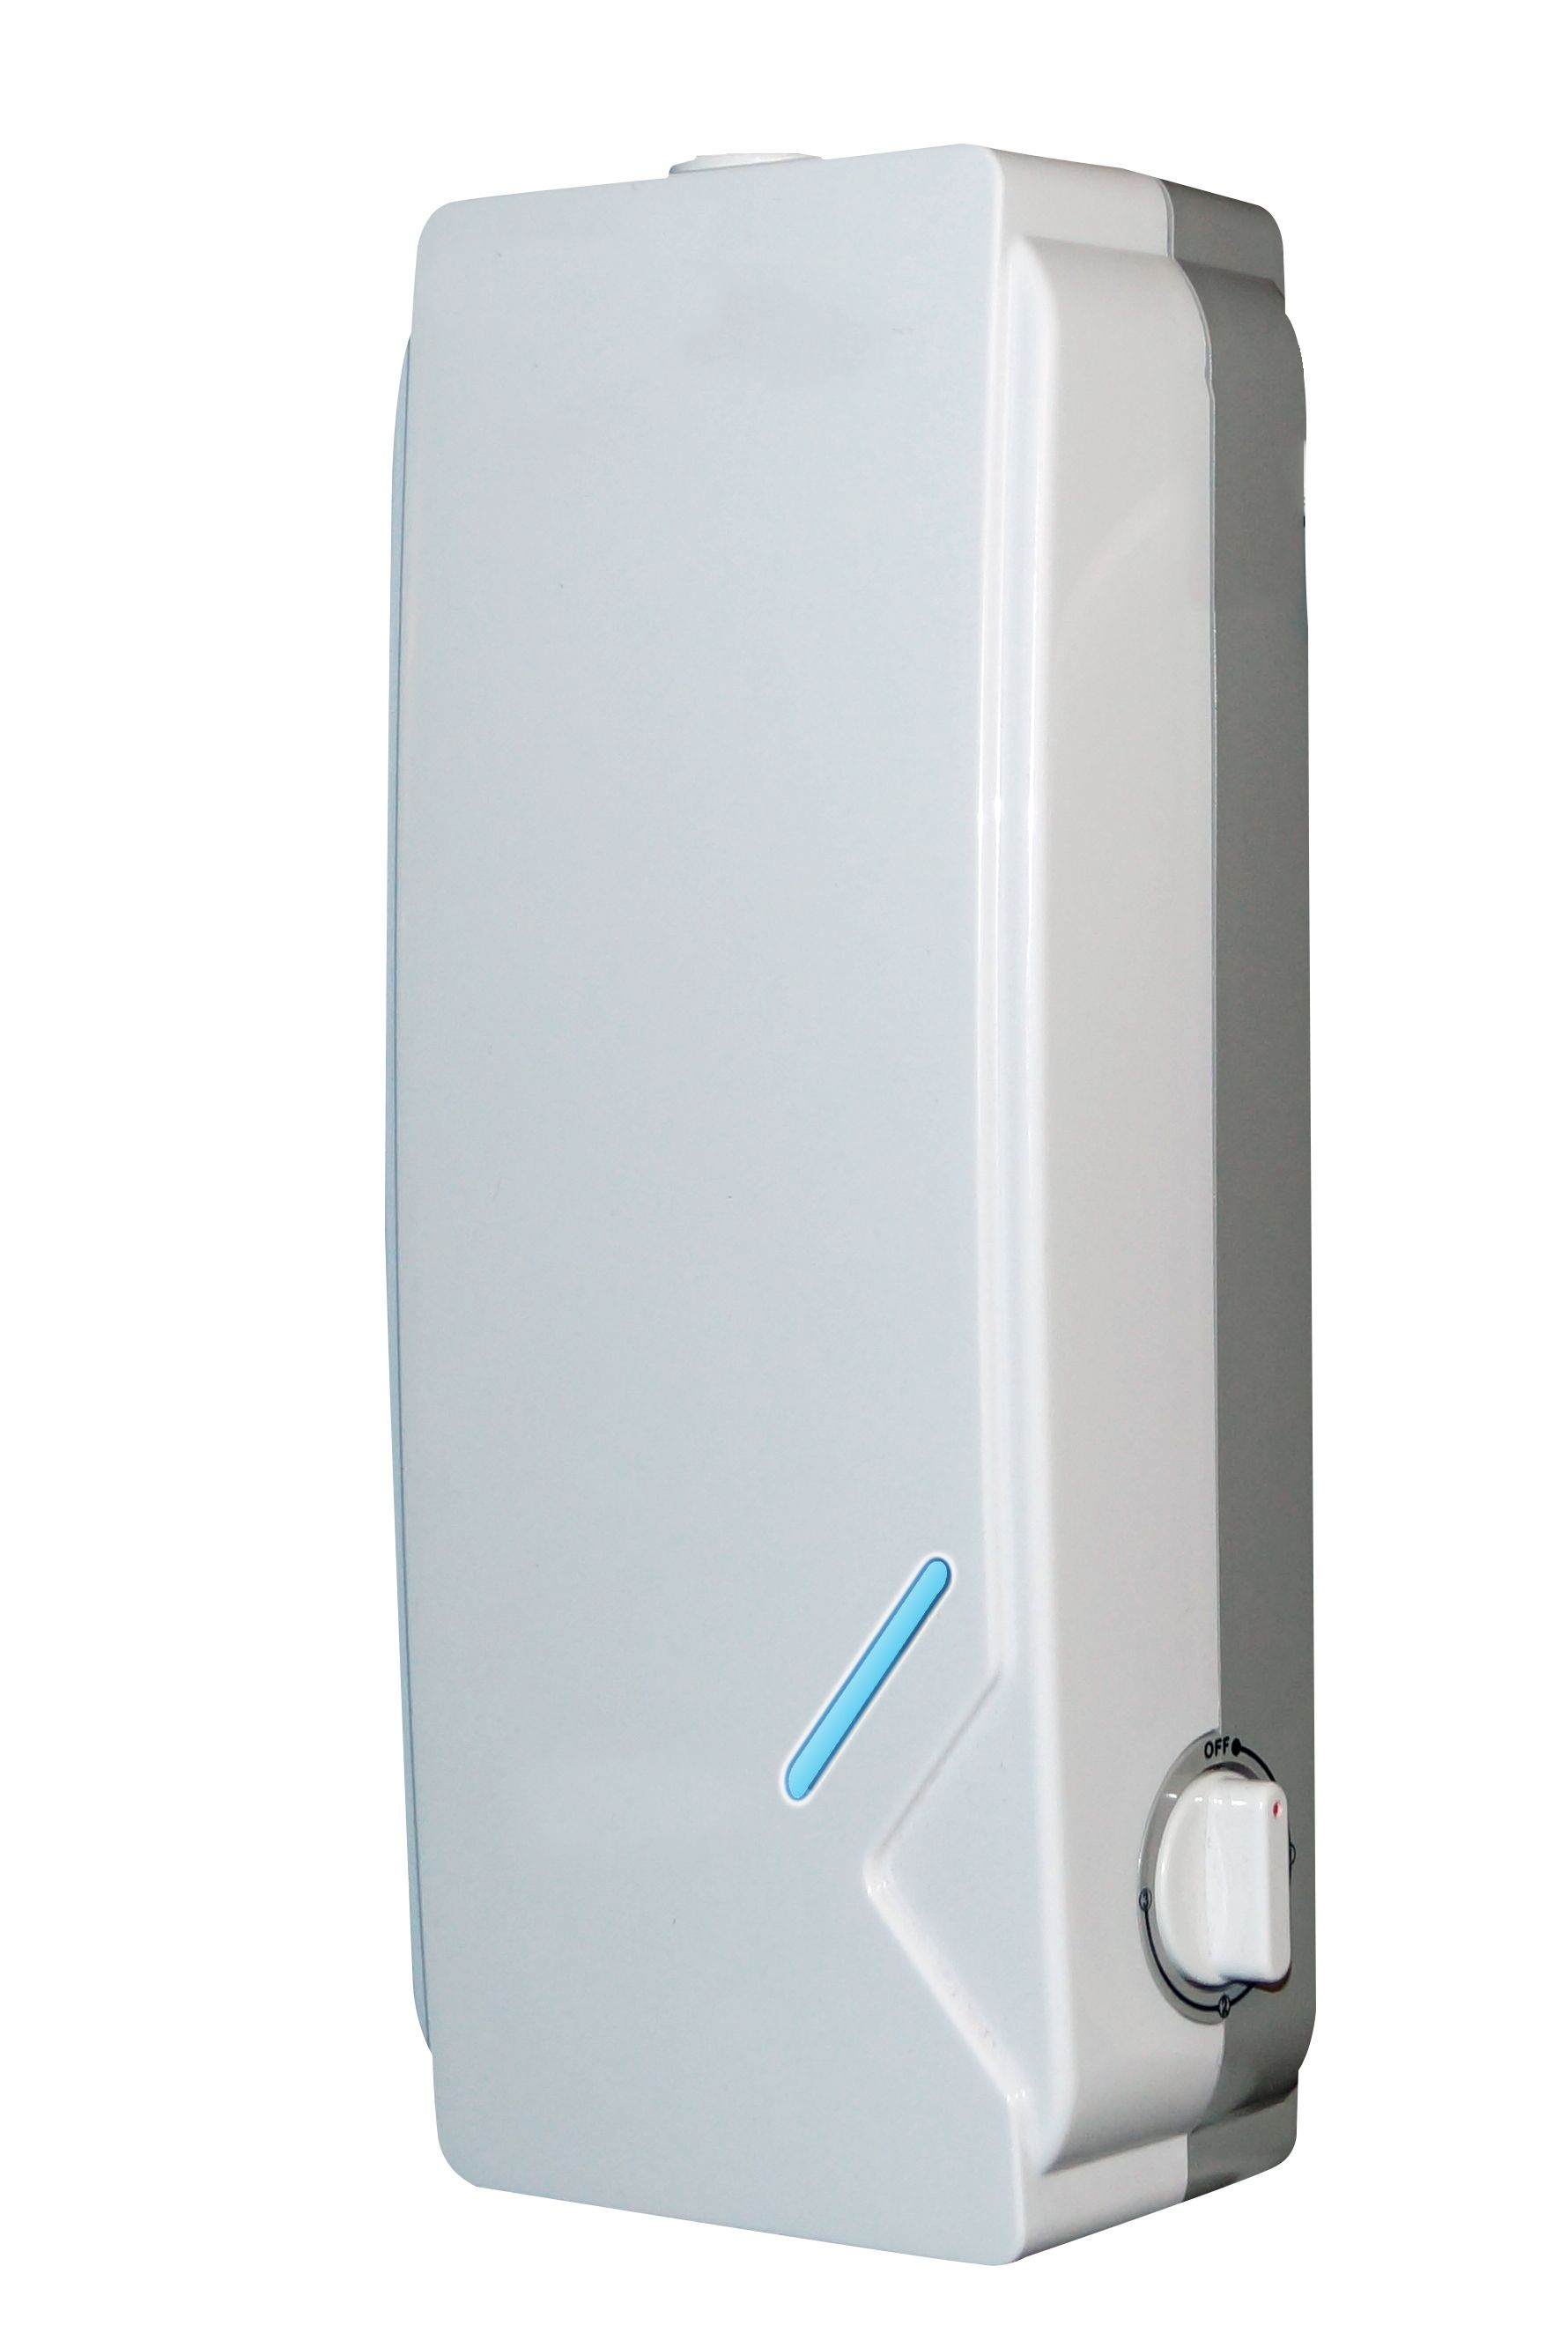 Pin By Cindy Fang On Instant Electric Water Heater Electric Water Heater Electricity Water Heater